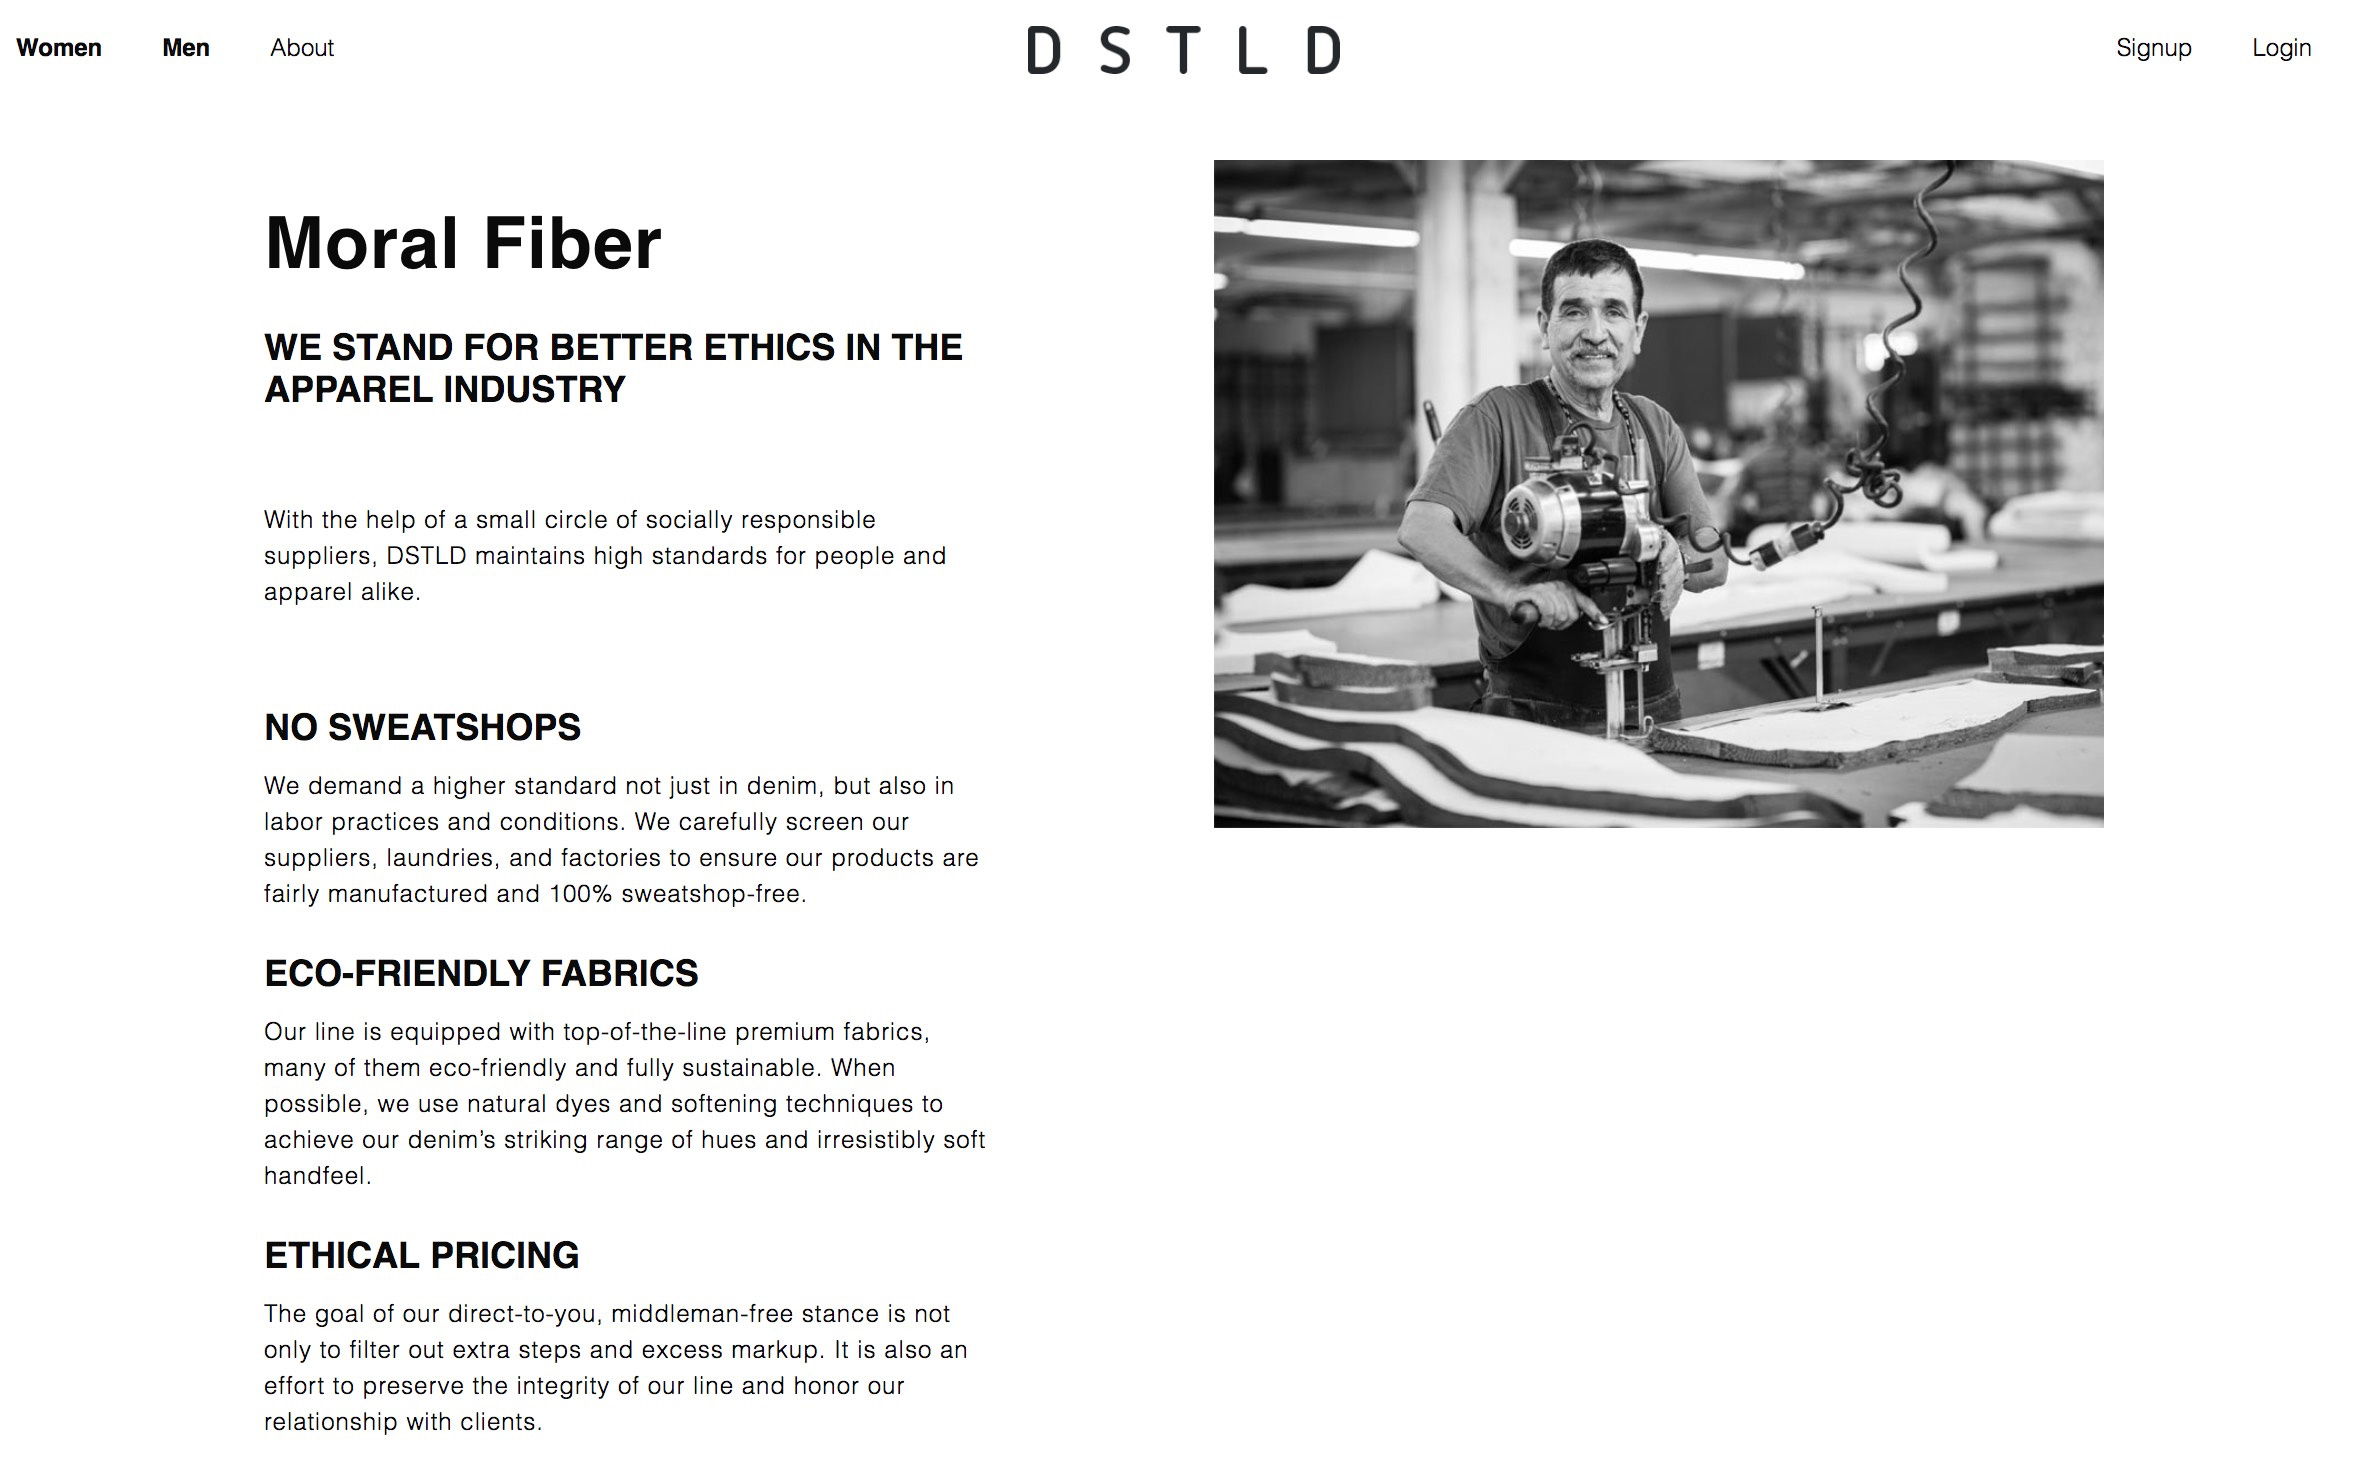 DSTLD's website features a mission statement of values and quality.